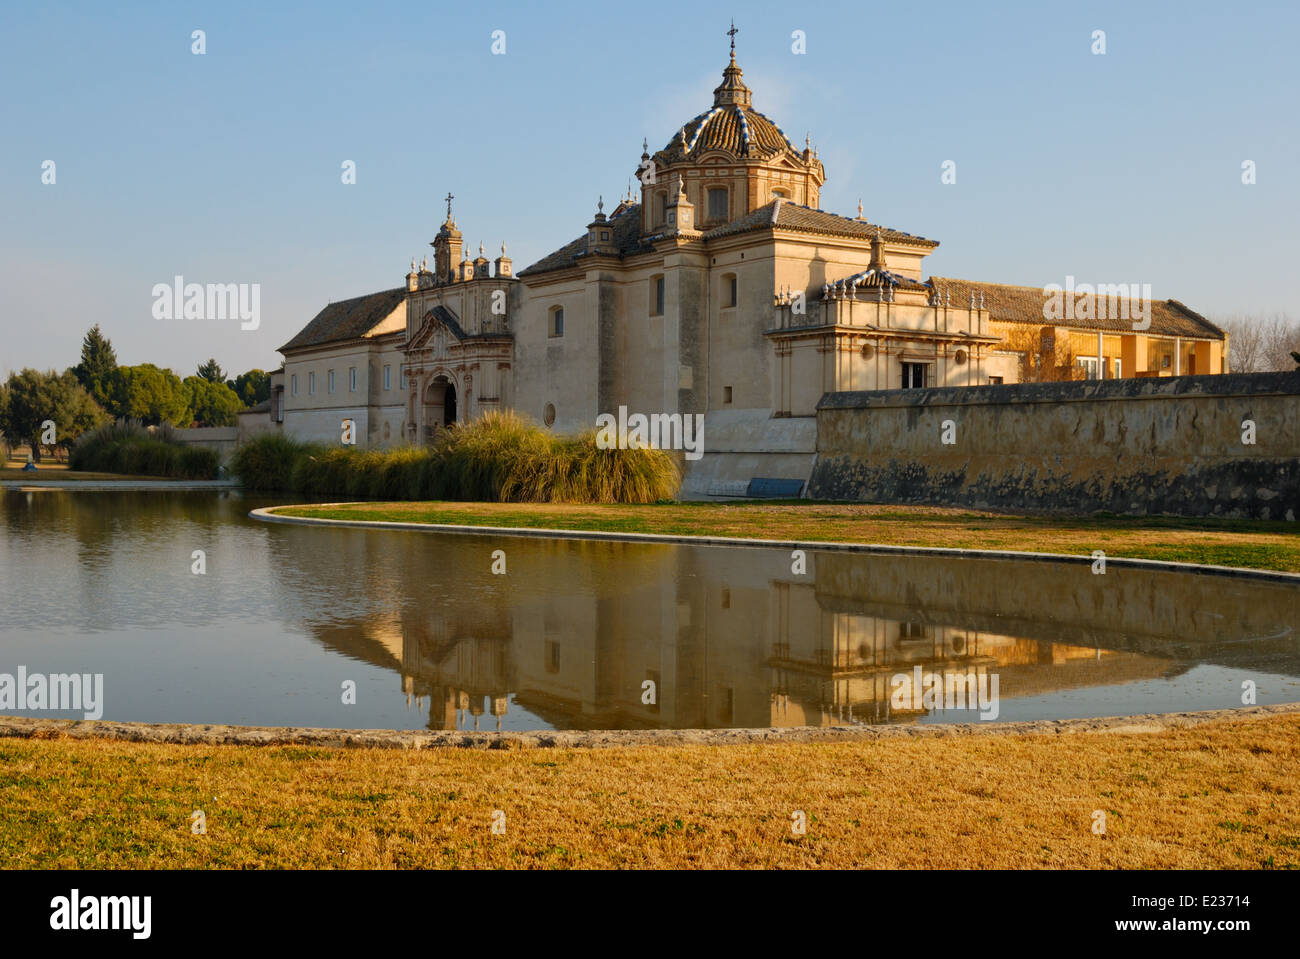 La Cartuja, an old monastery located Seville, Spain. In 1997, it became the site of a museum of contemporary and - Stock Image